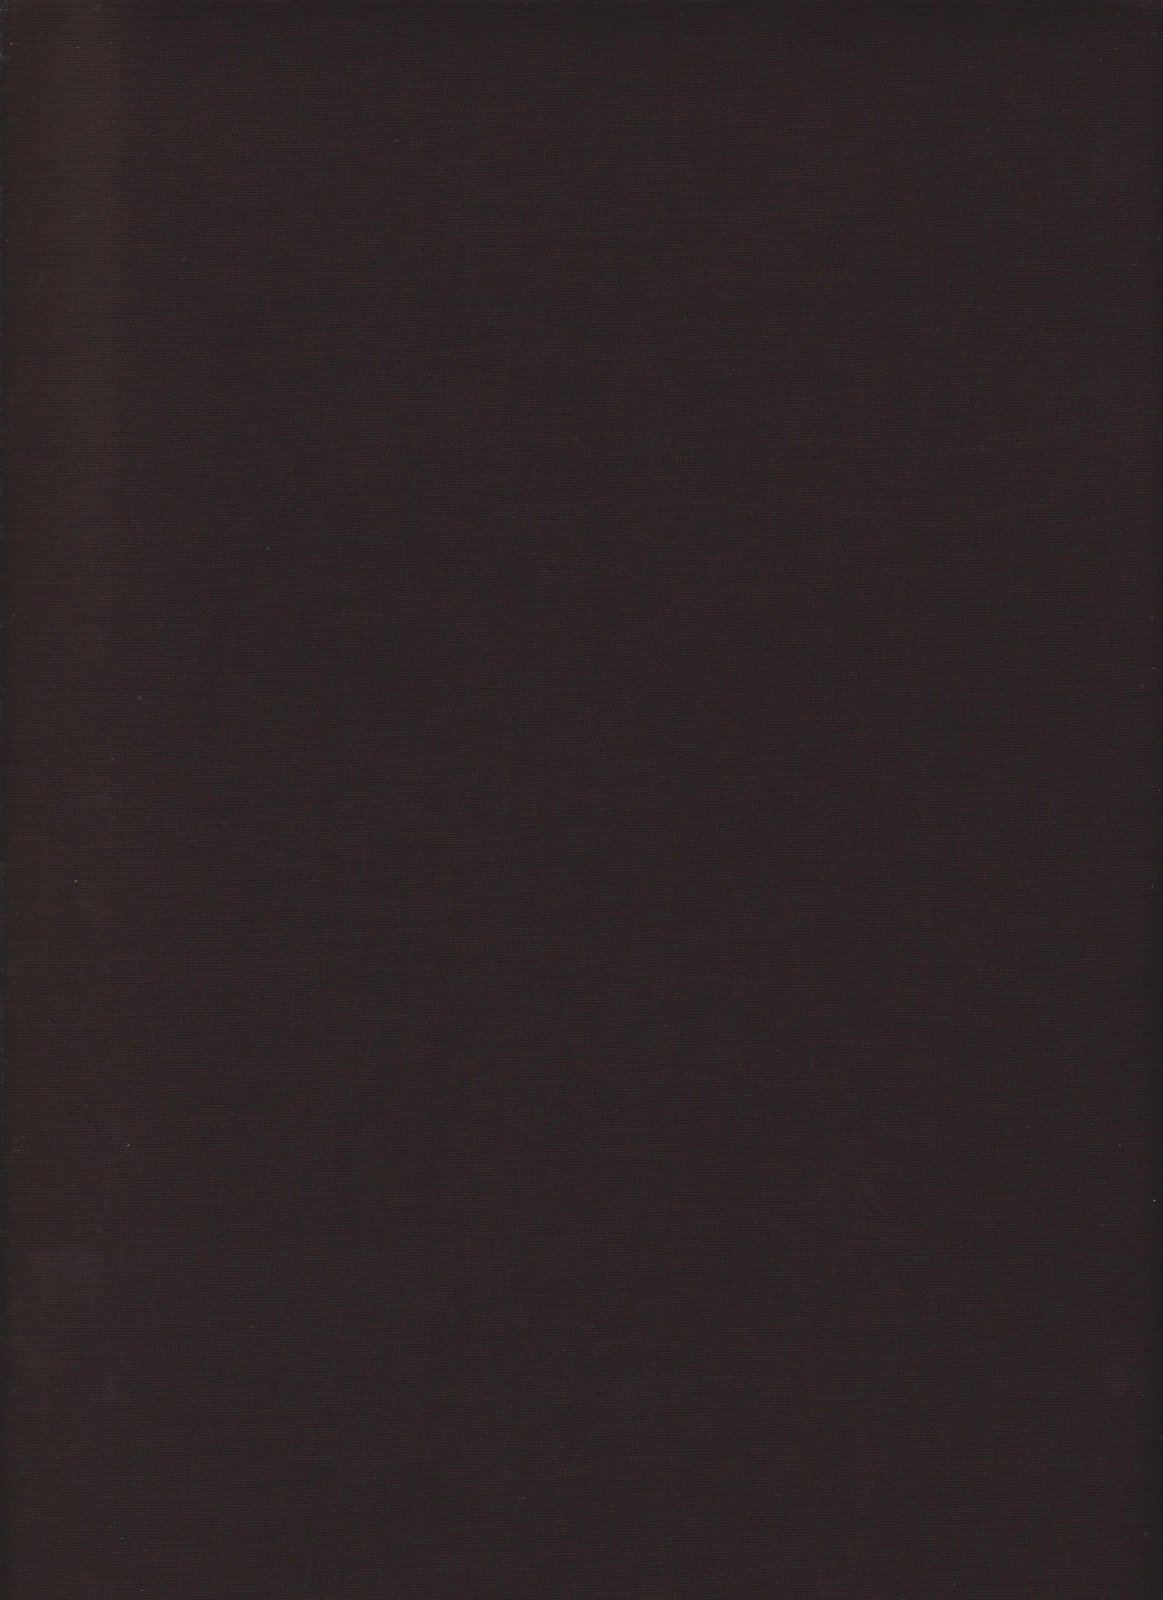 AMERICANA SOLIDS DARK BROWN